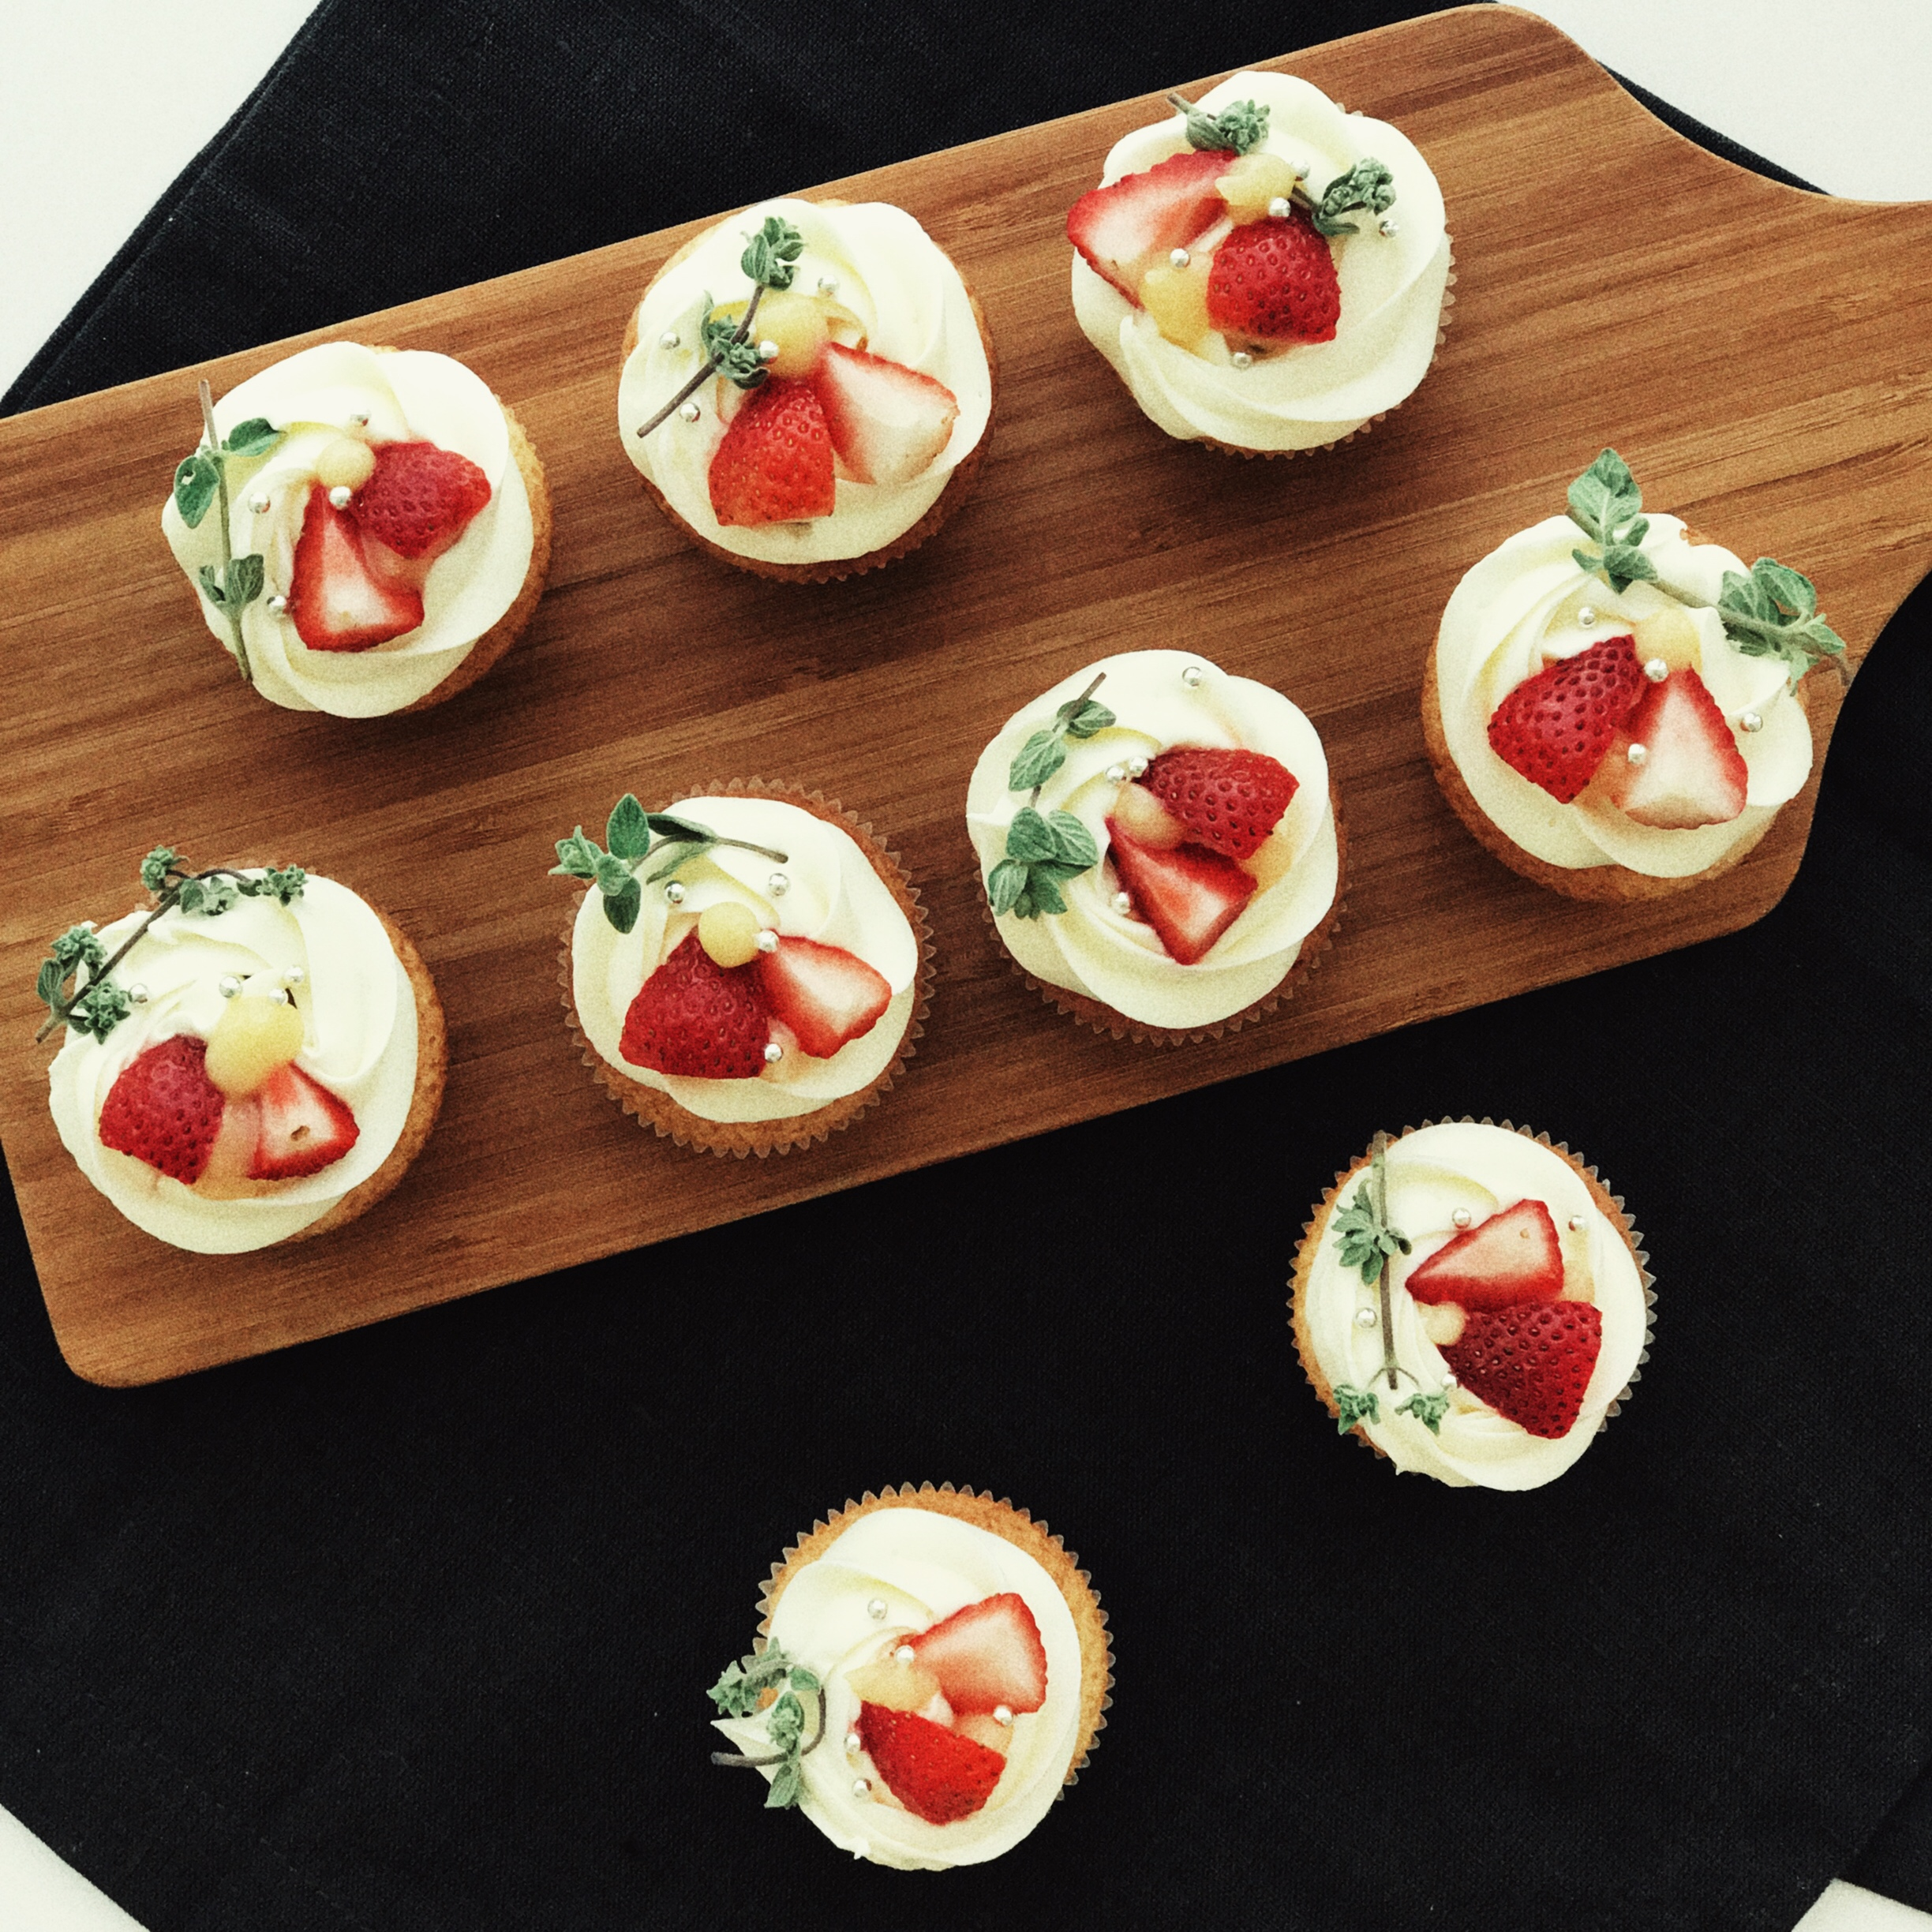 Lemon Cupcakes with fresh strawberries and lemon curd by The Good Cake